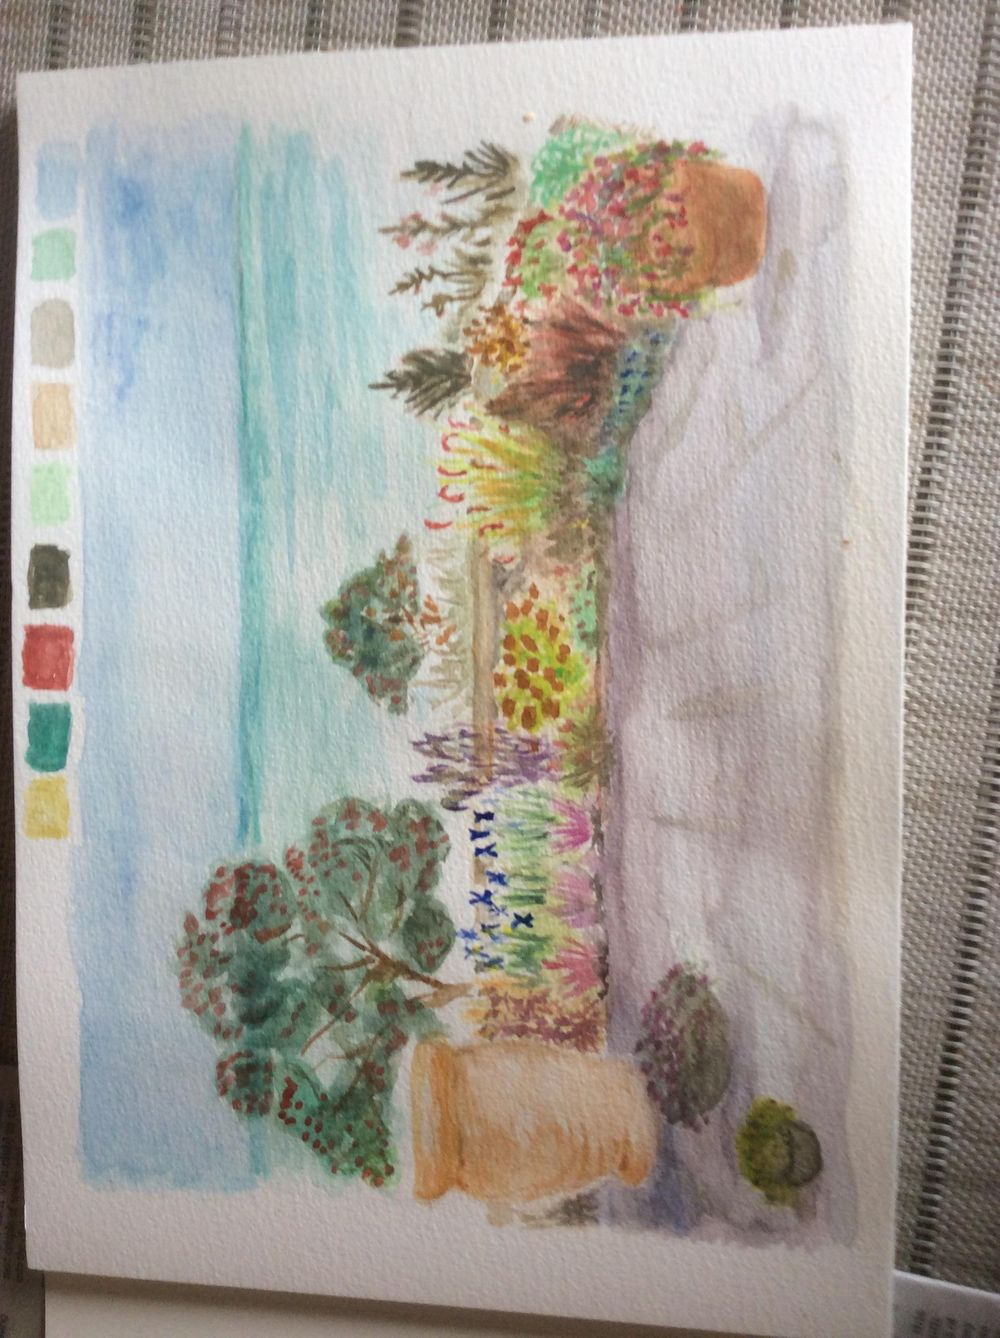 Botanical Illustration : Creating a colorful garden - image 1 - student project